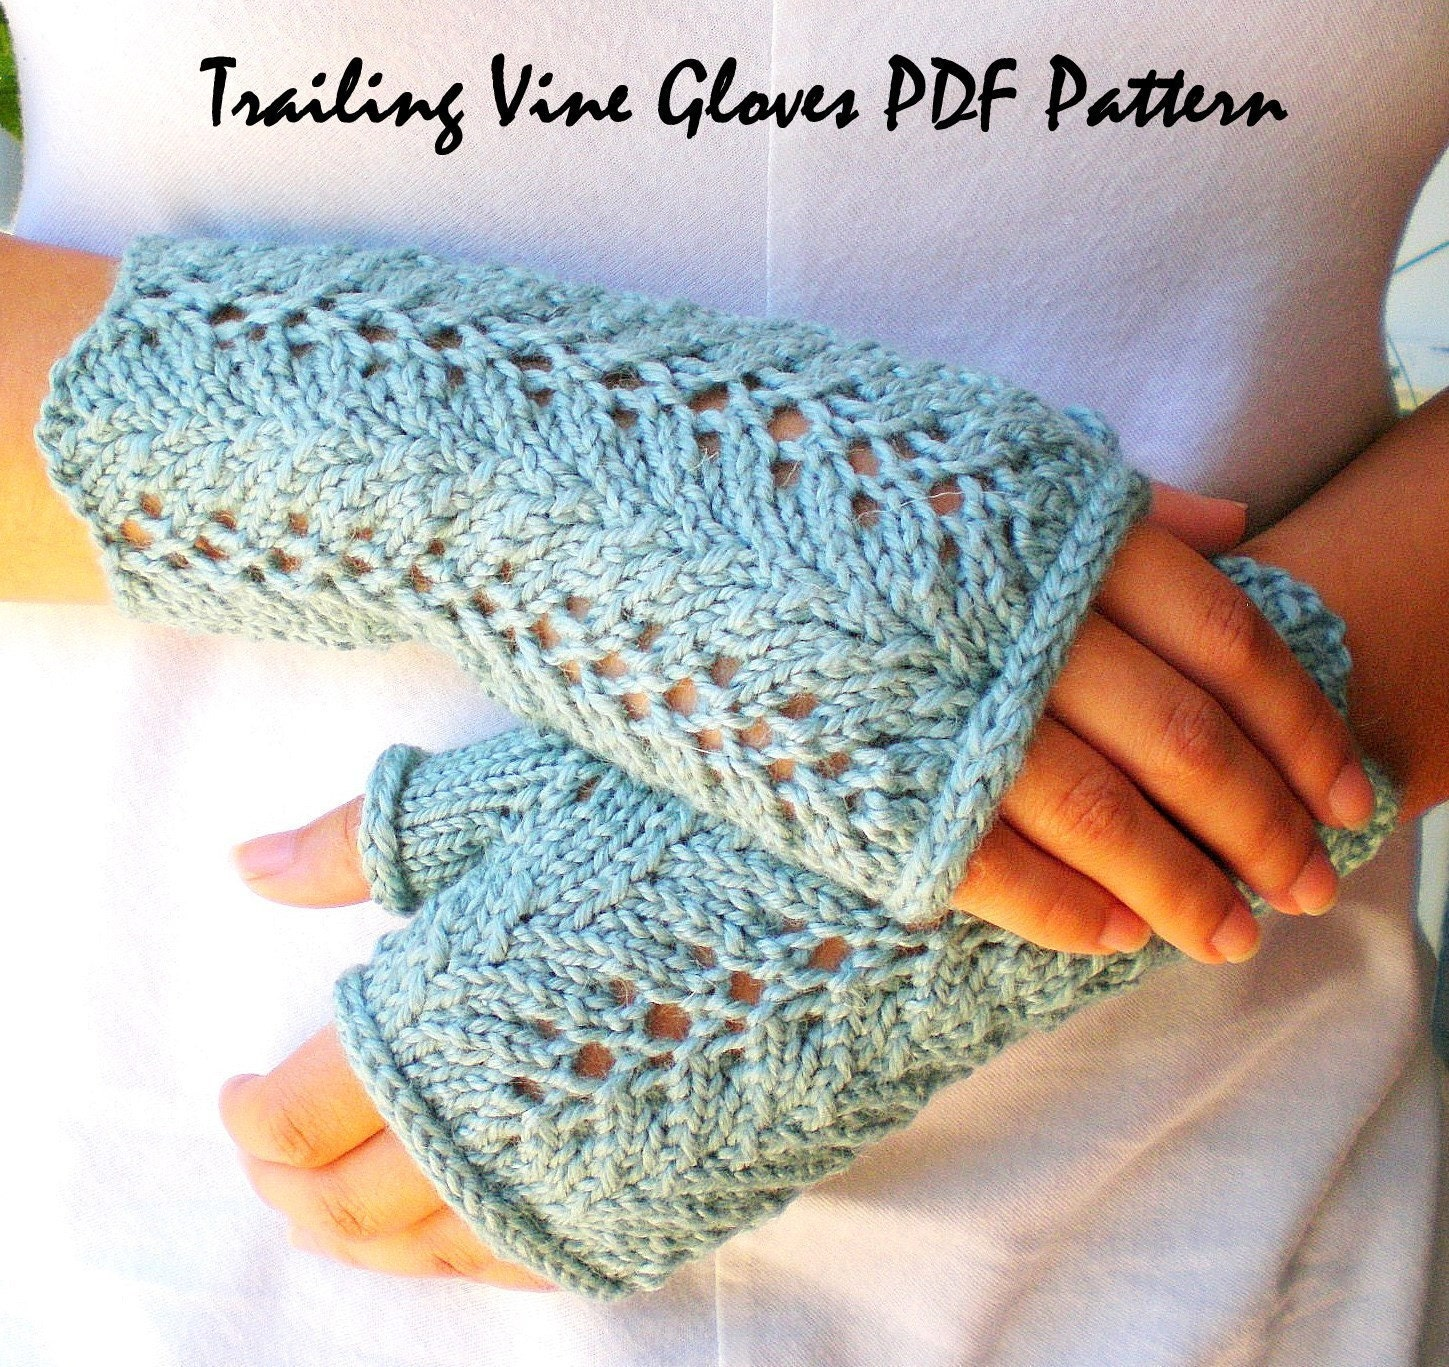 Lace Mittens Knitting Pattern : PDF Knitting Pattern Lace Fingerless Gloves Trailing Vines